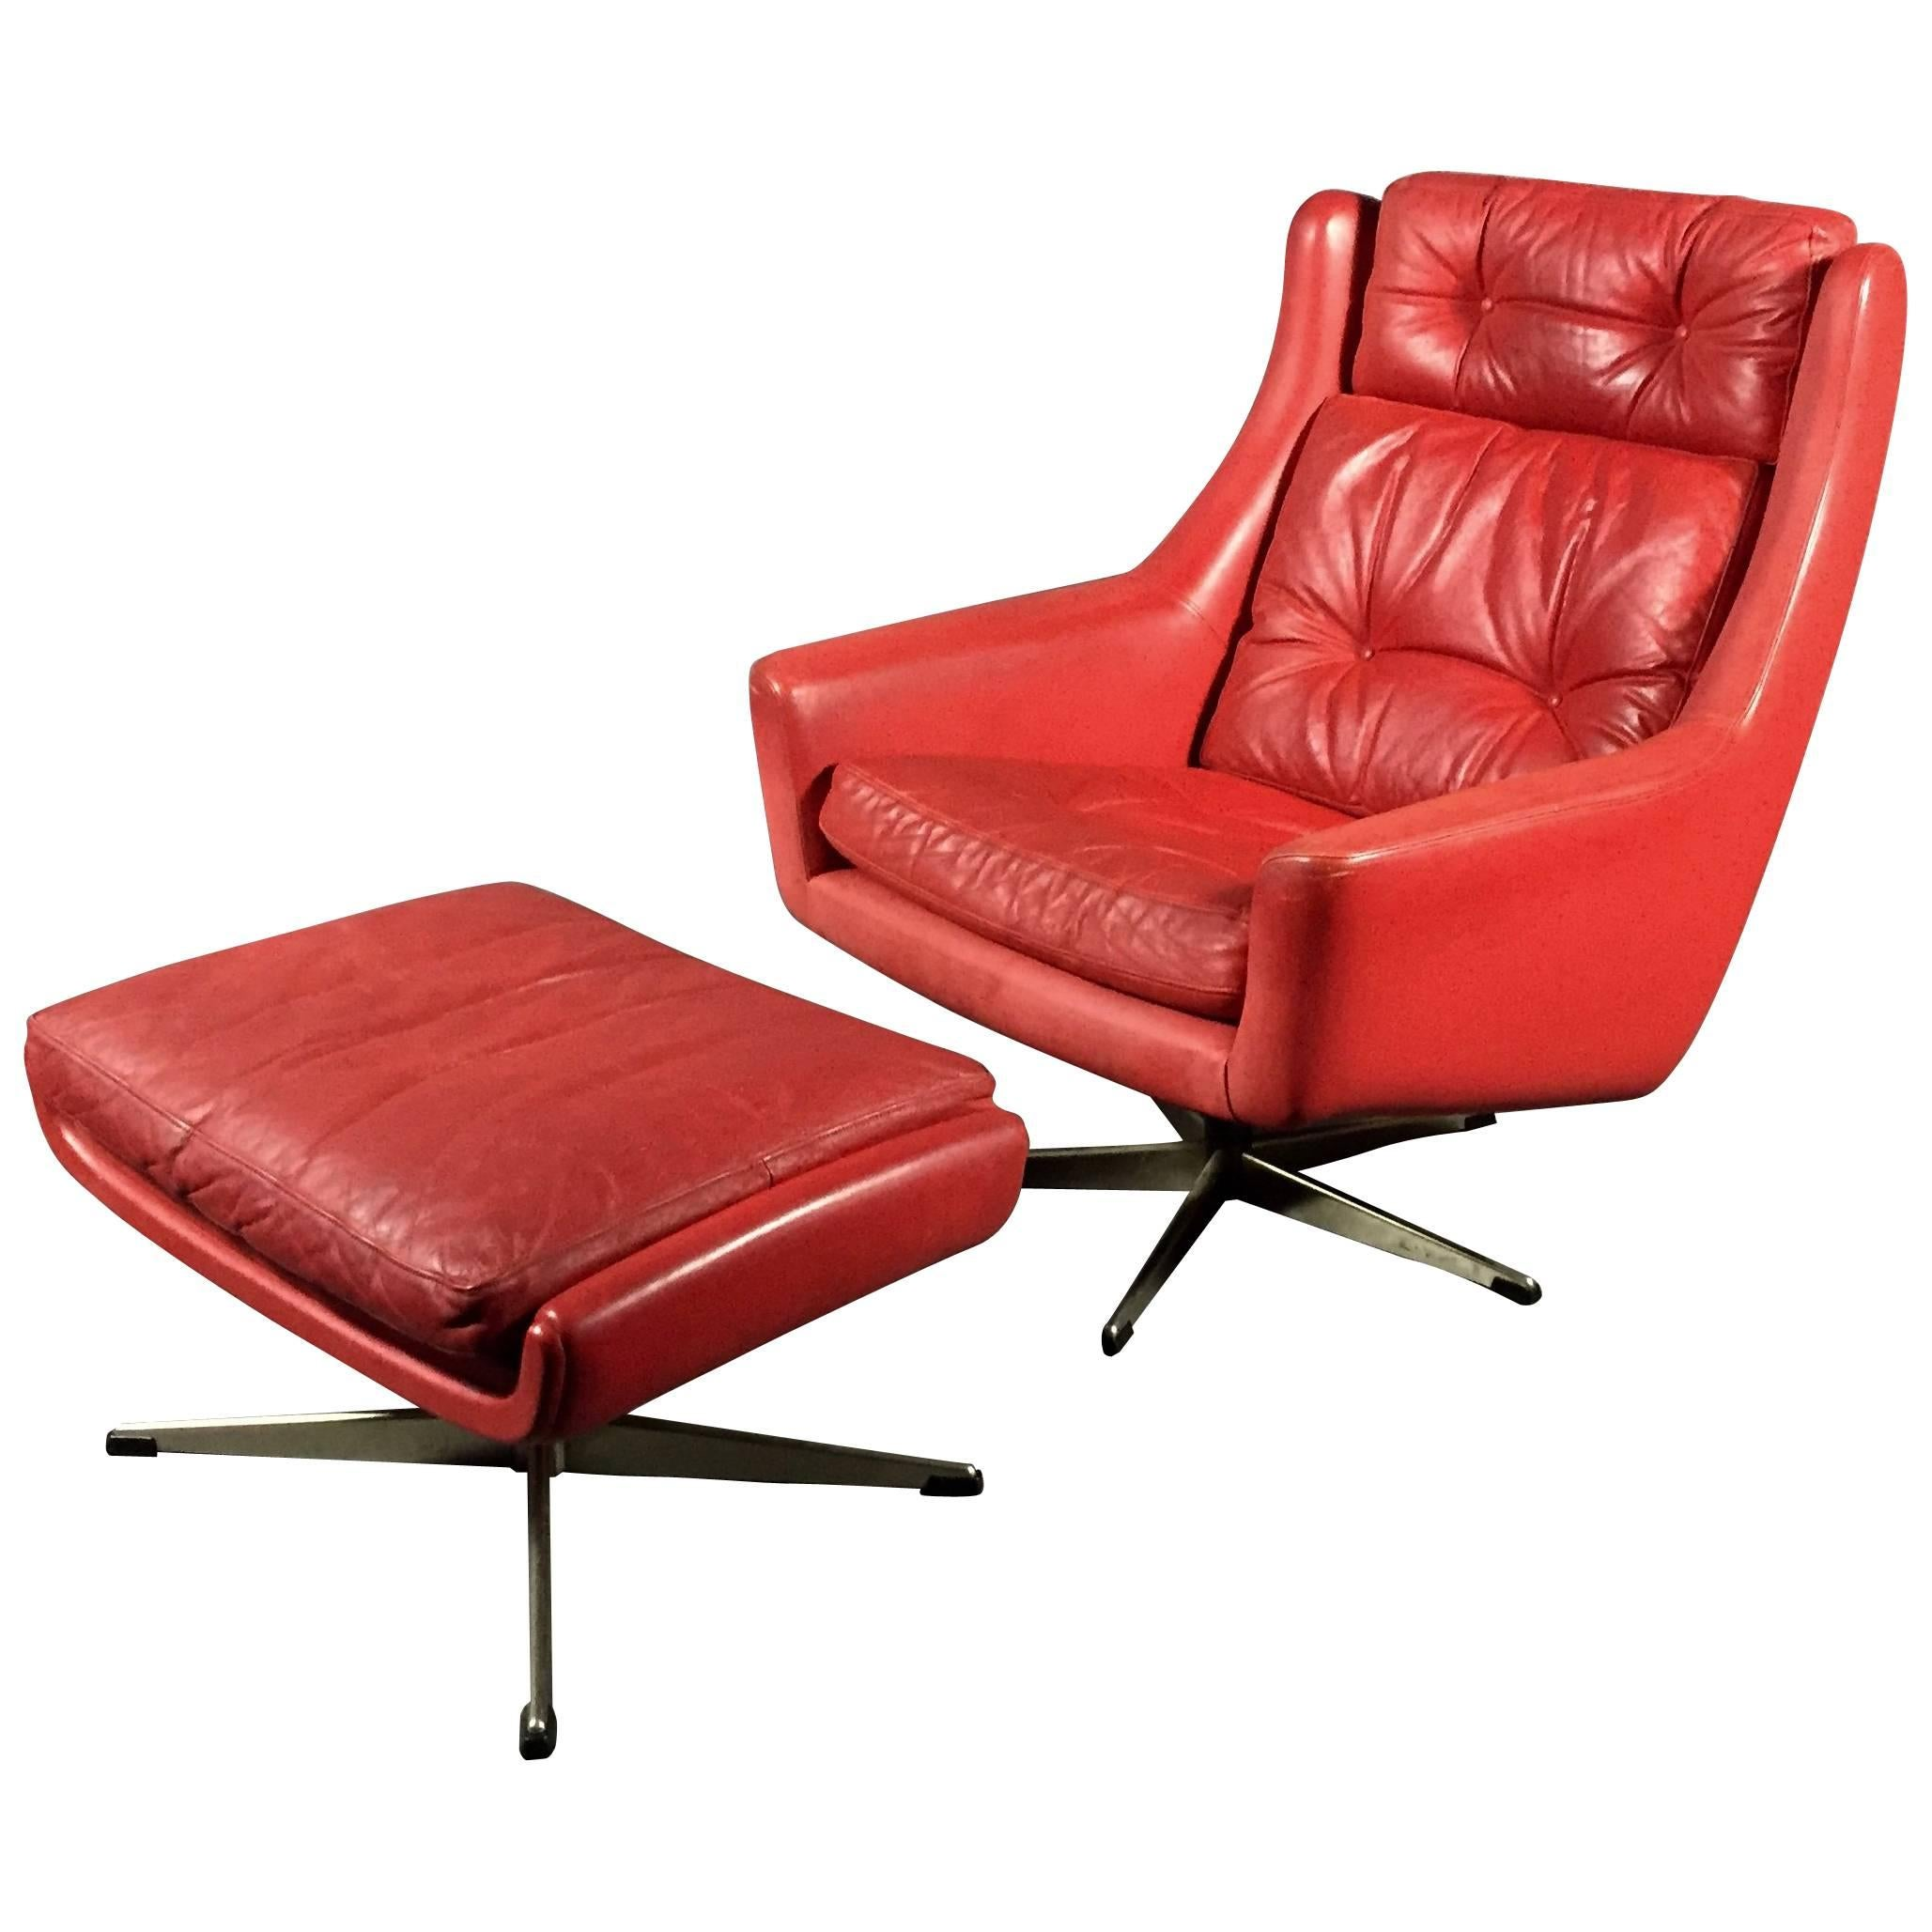 Danish Red Leather Swivel Chair And Ottoman, Circa 1970 For Sale